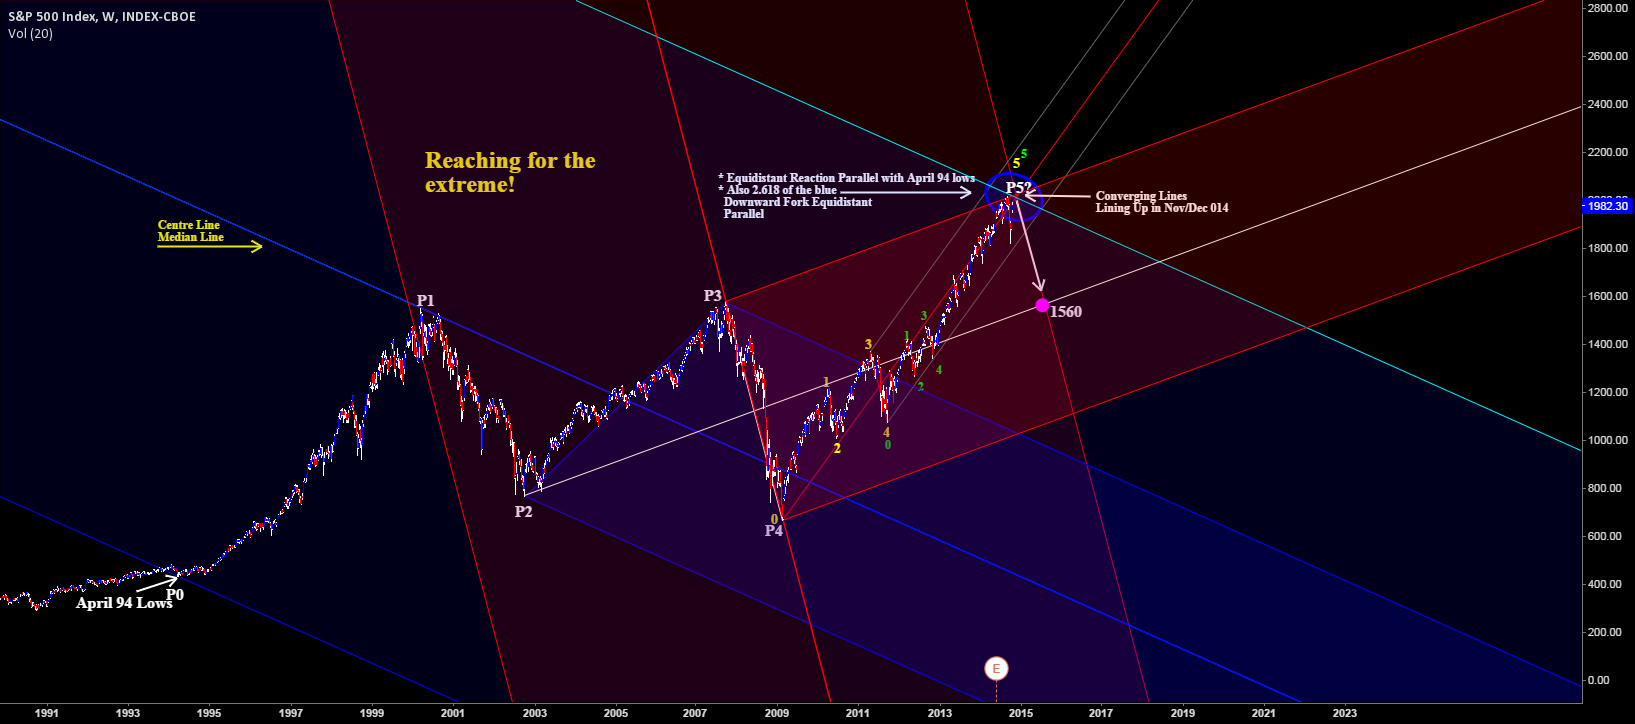 Reaching for the extreme! on the S&P500